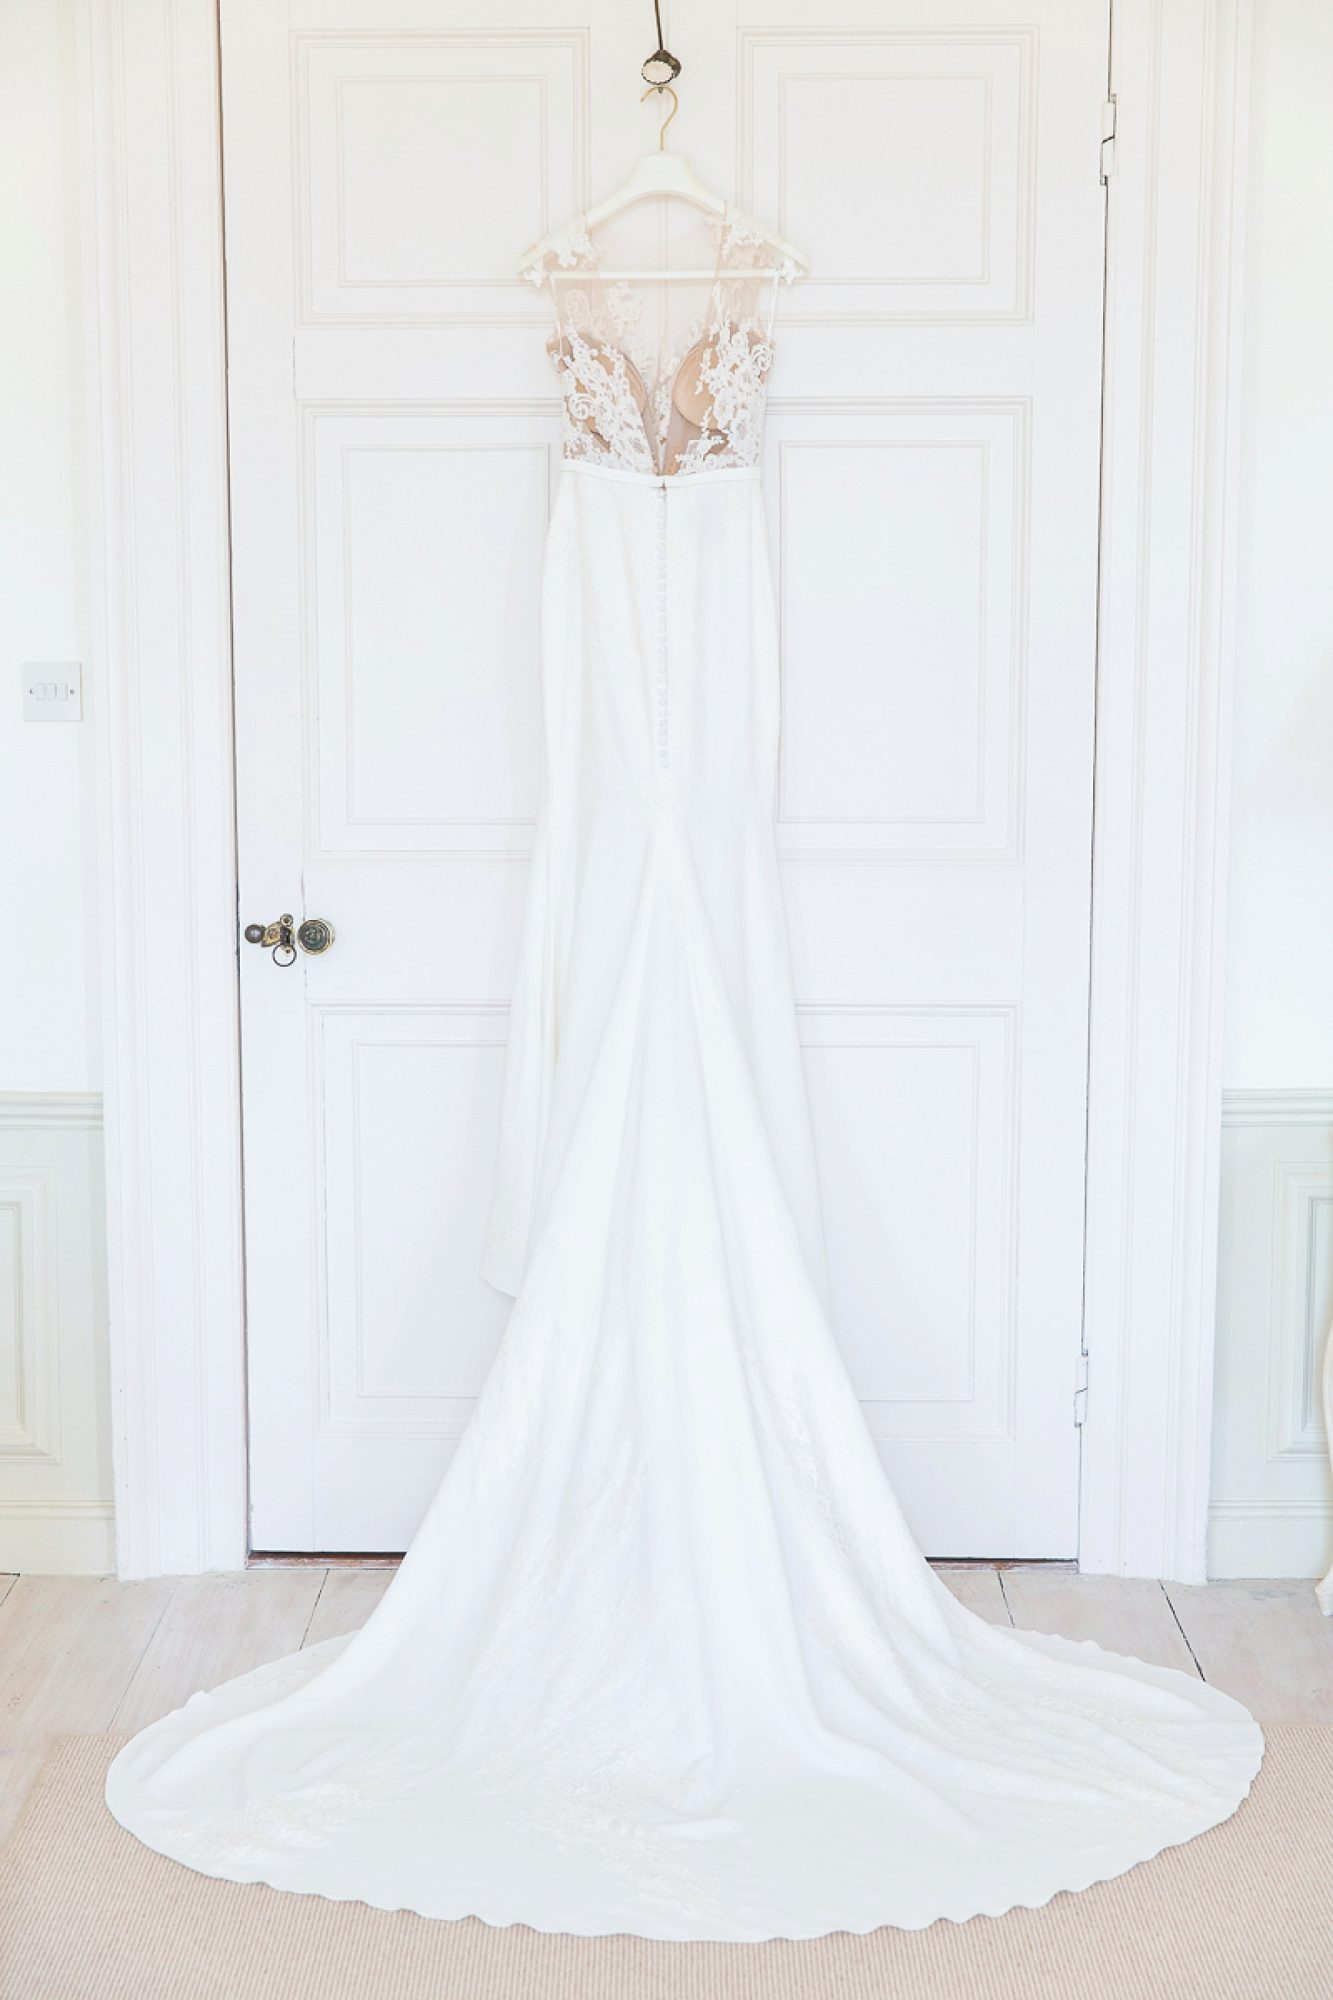 Pronovias wedding dress hanging on door at Pynes House wedding